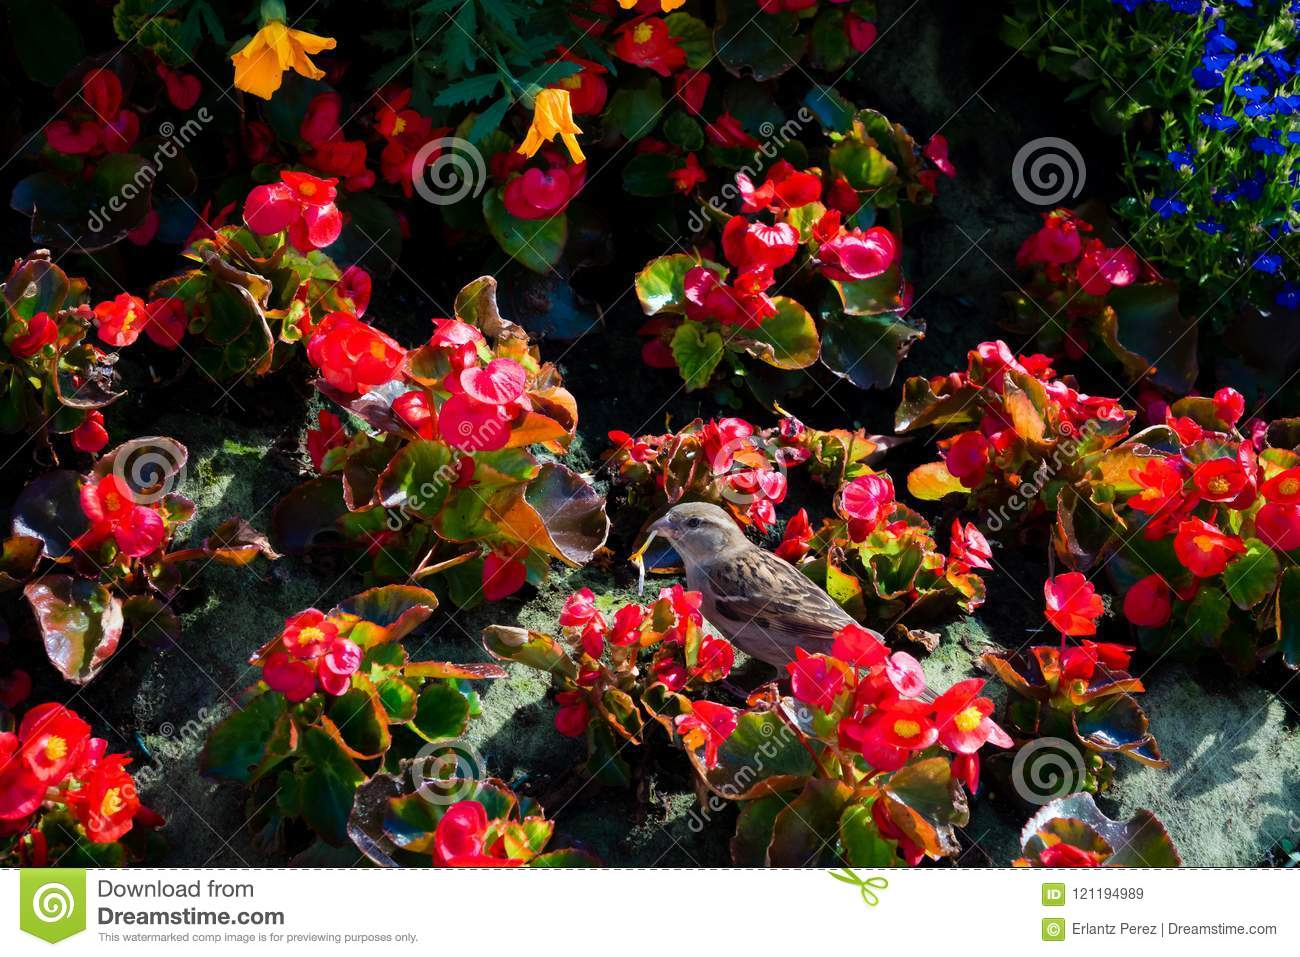 Little bird and red flowers